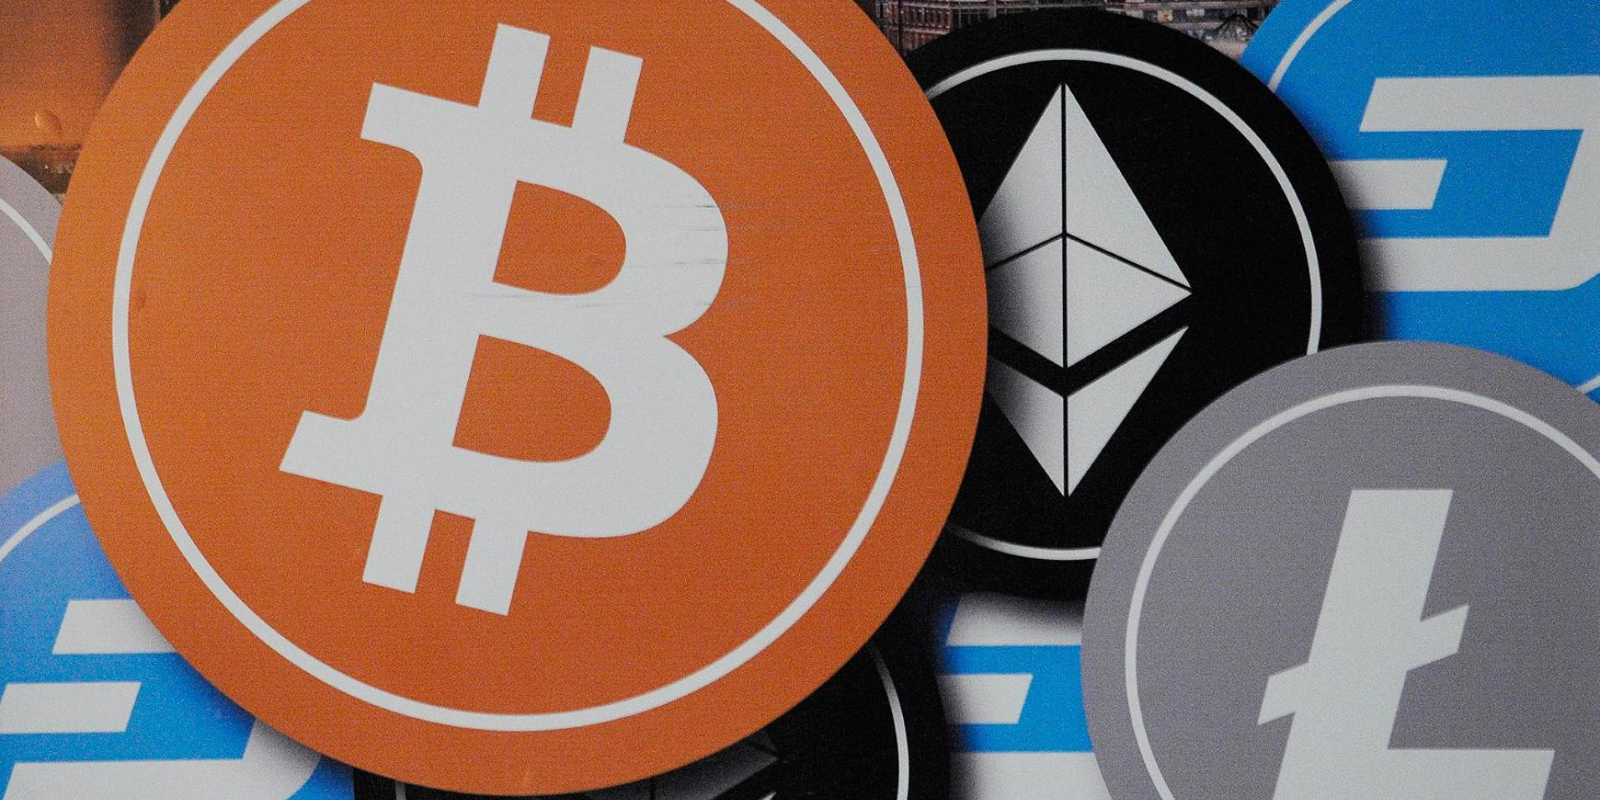 Project exploring the bitcoin cryptocurrency market